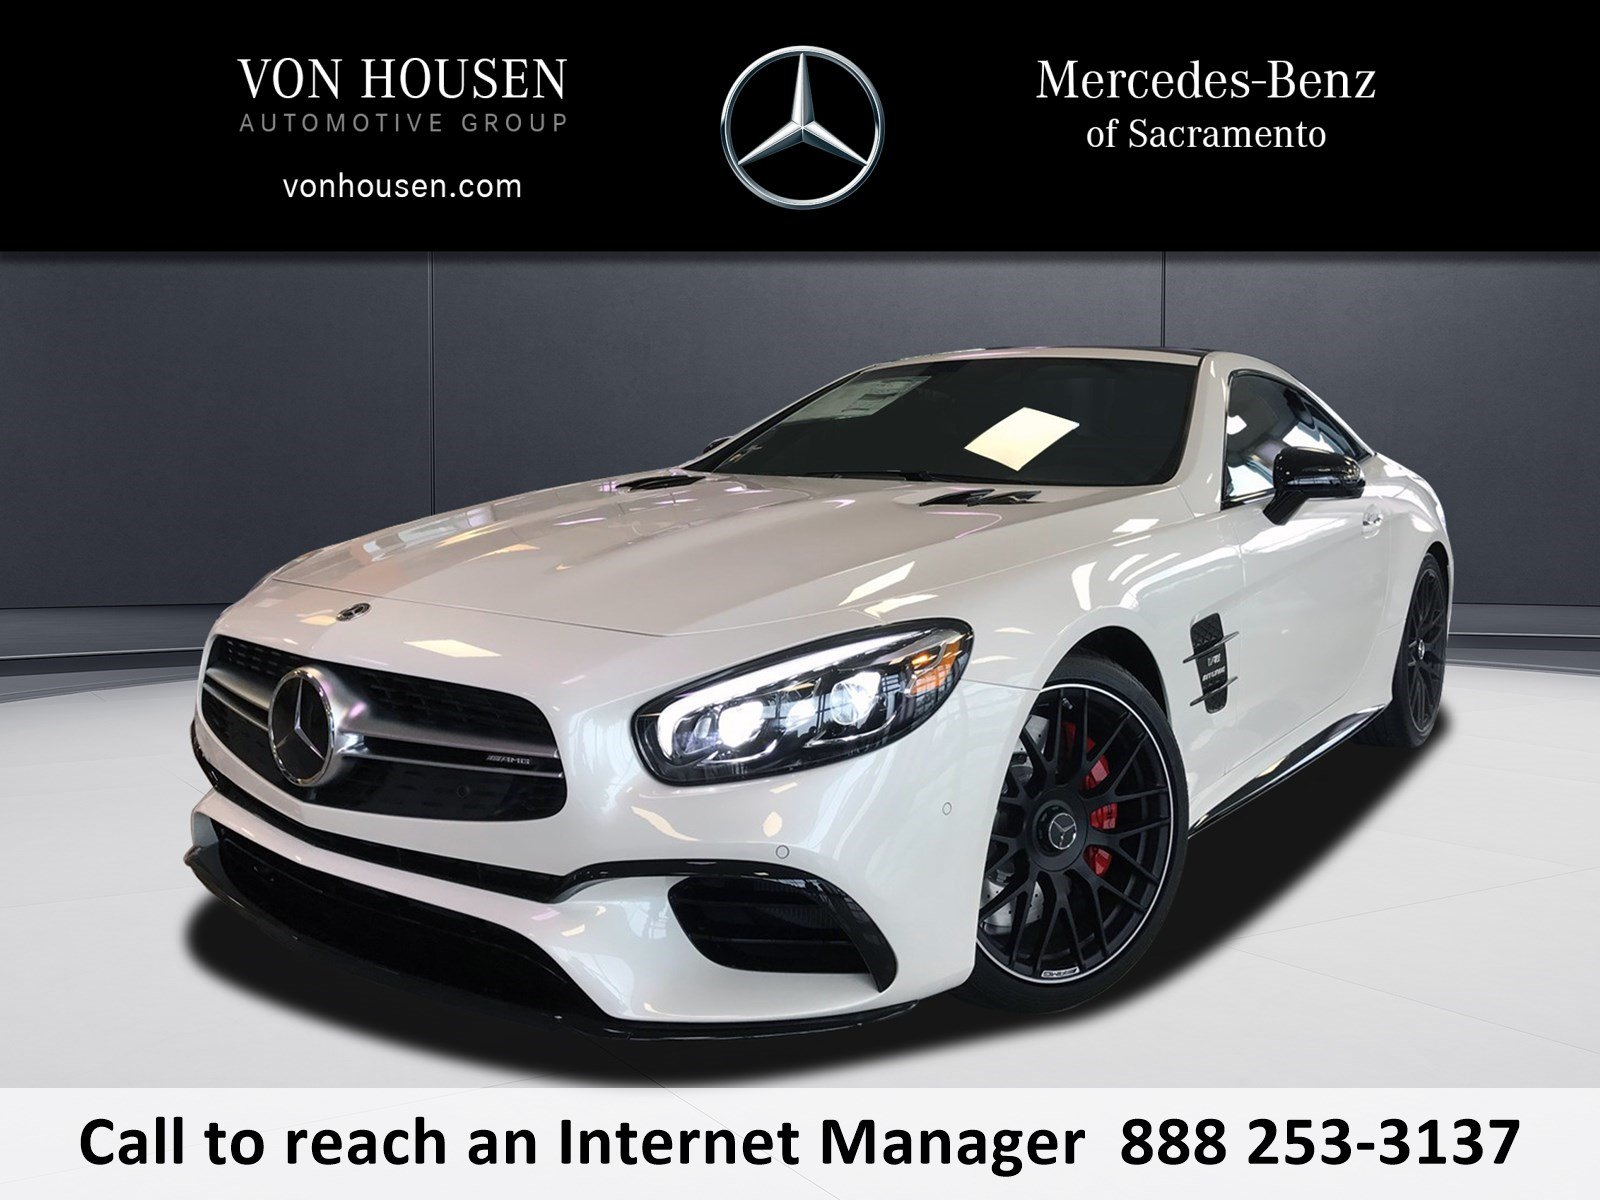 roadster mercedes in sl inventory deals rwd lease benz convertible amg new ae sacramento